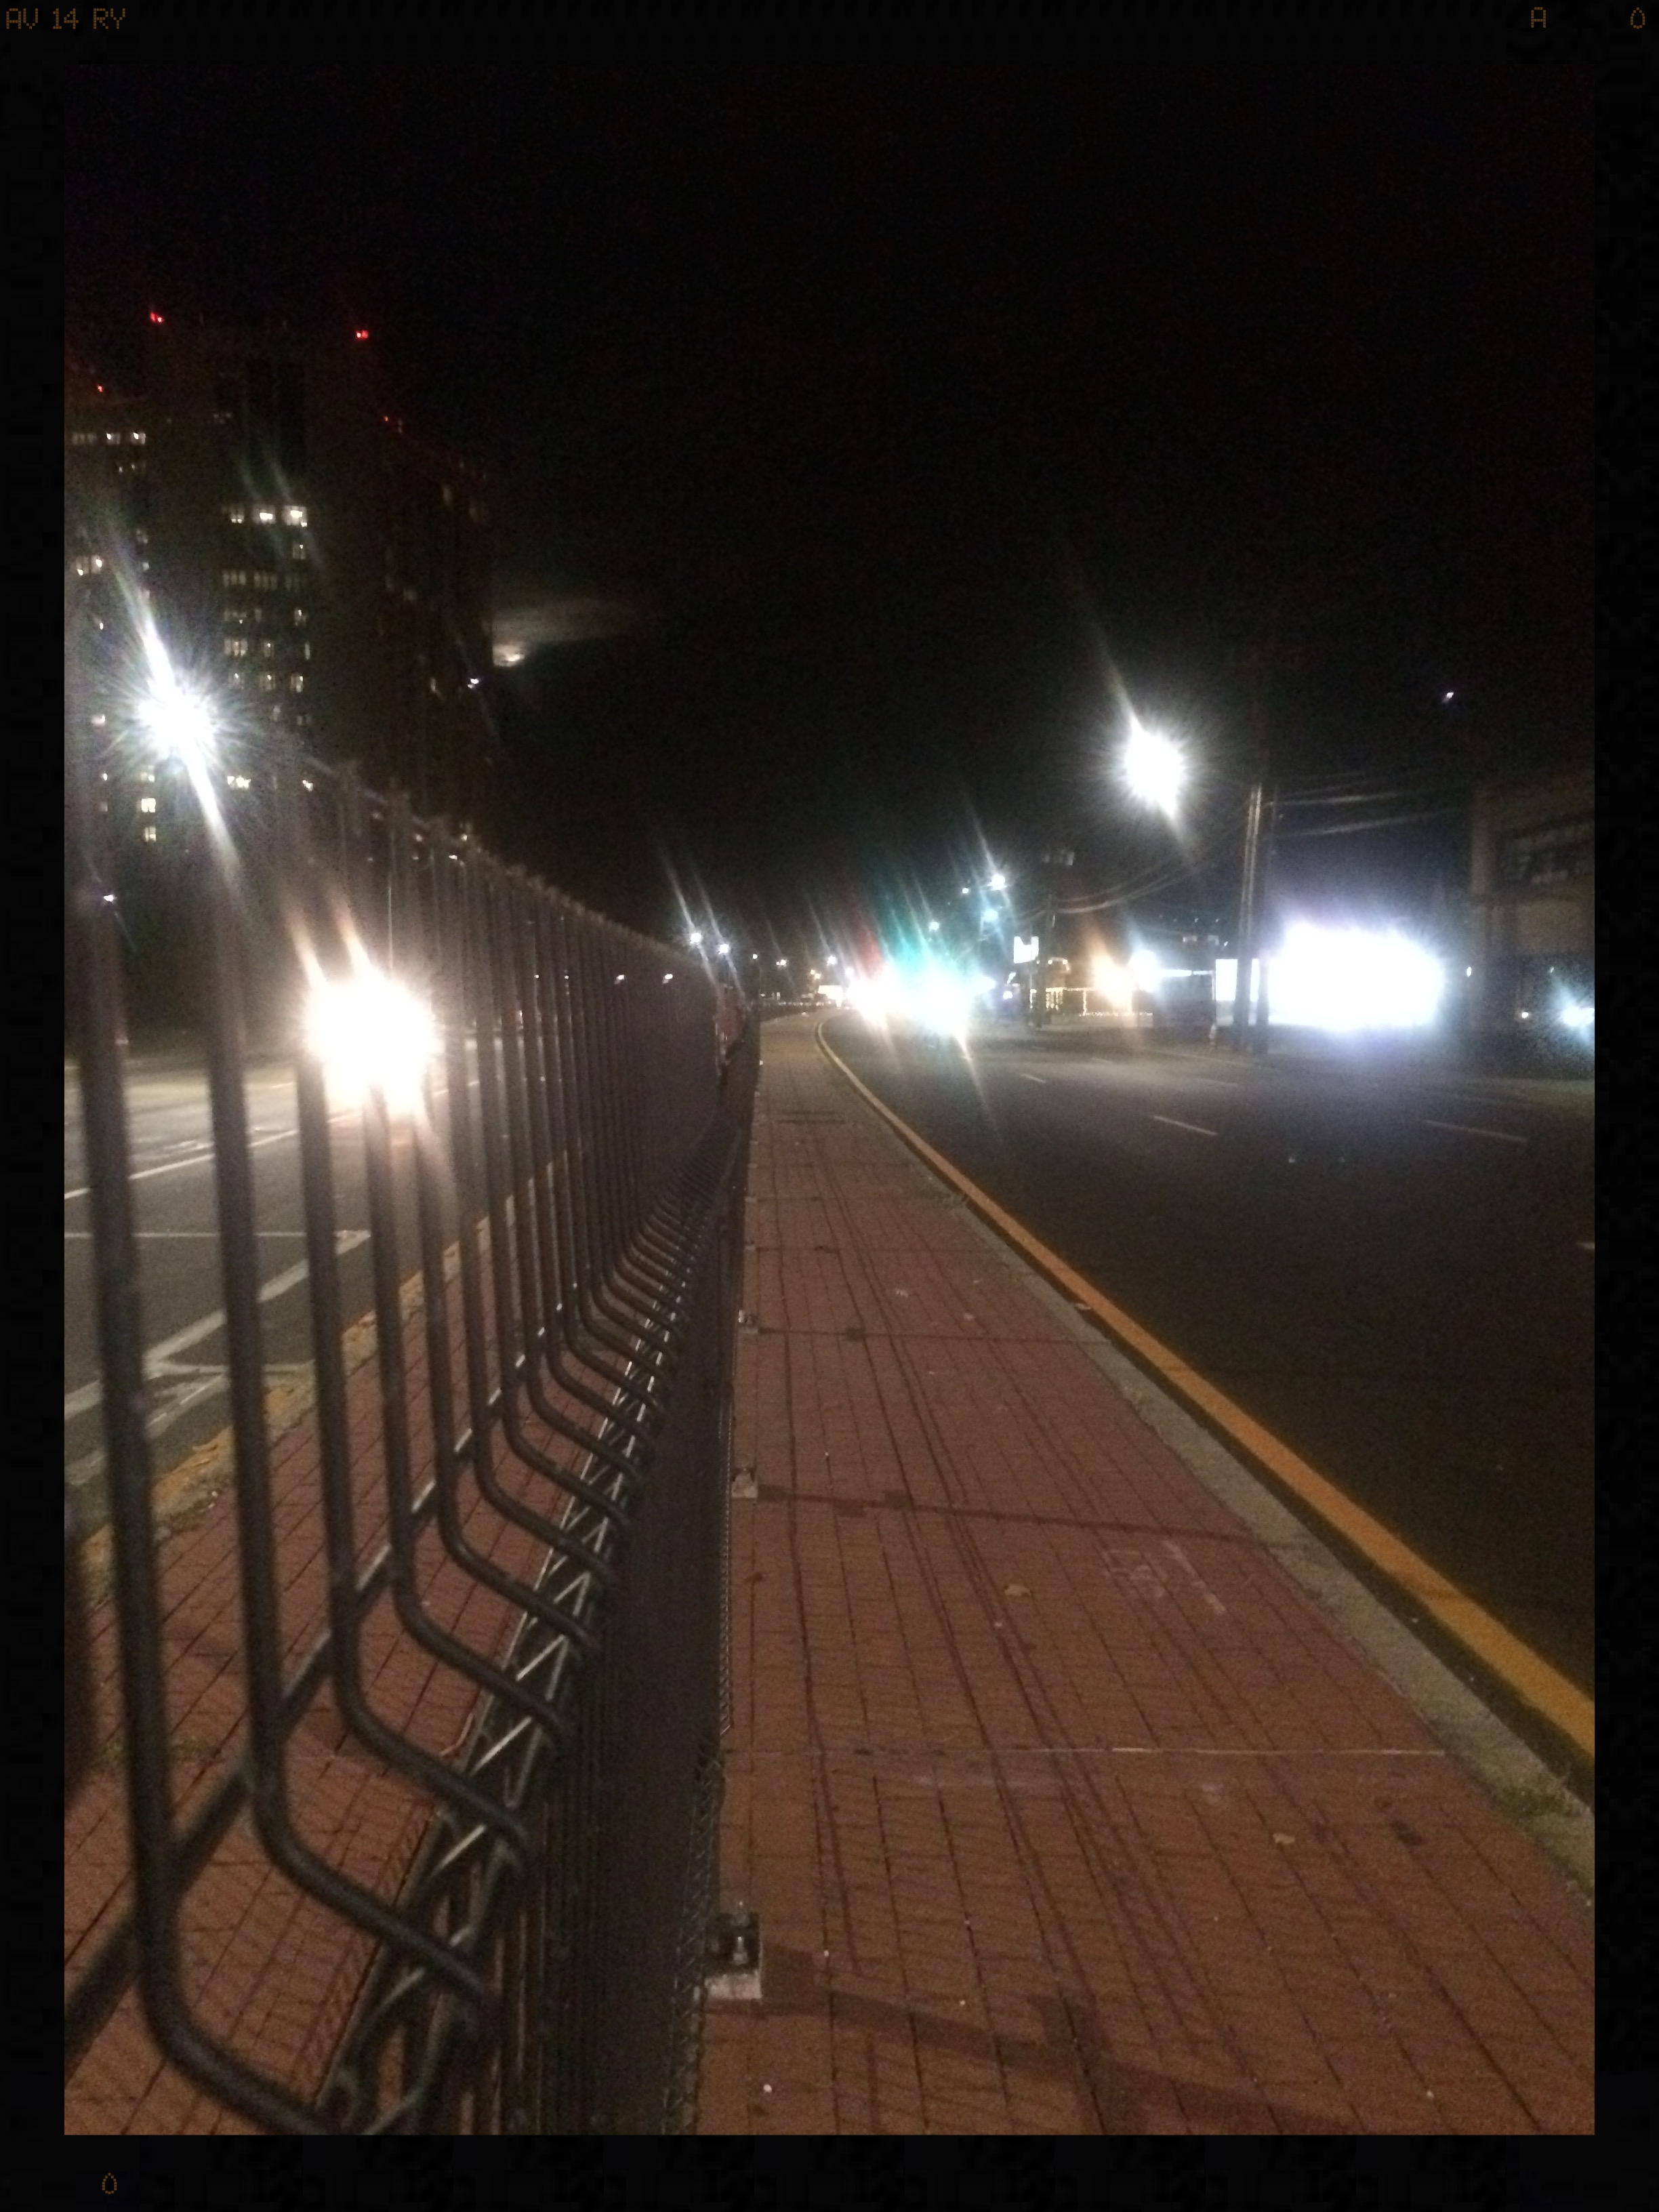 Fence erected between east and westbound lanes on Hempstead Turnpike in front of NUMC.